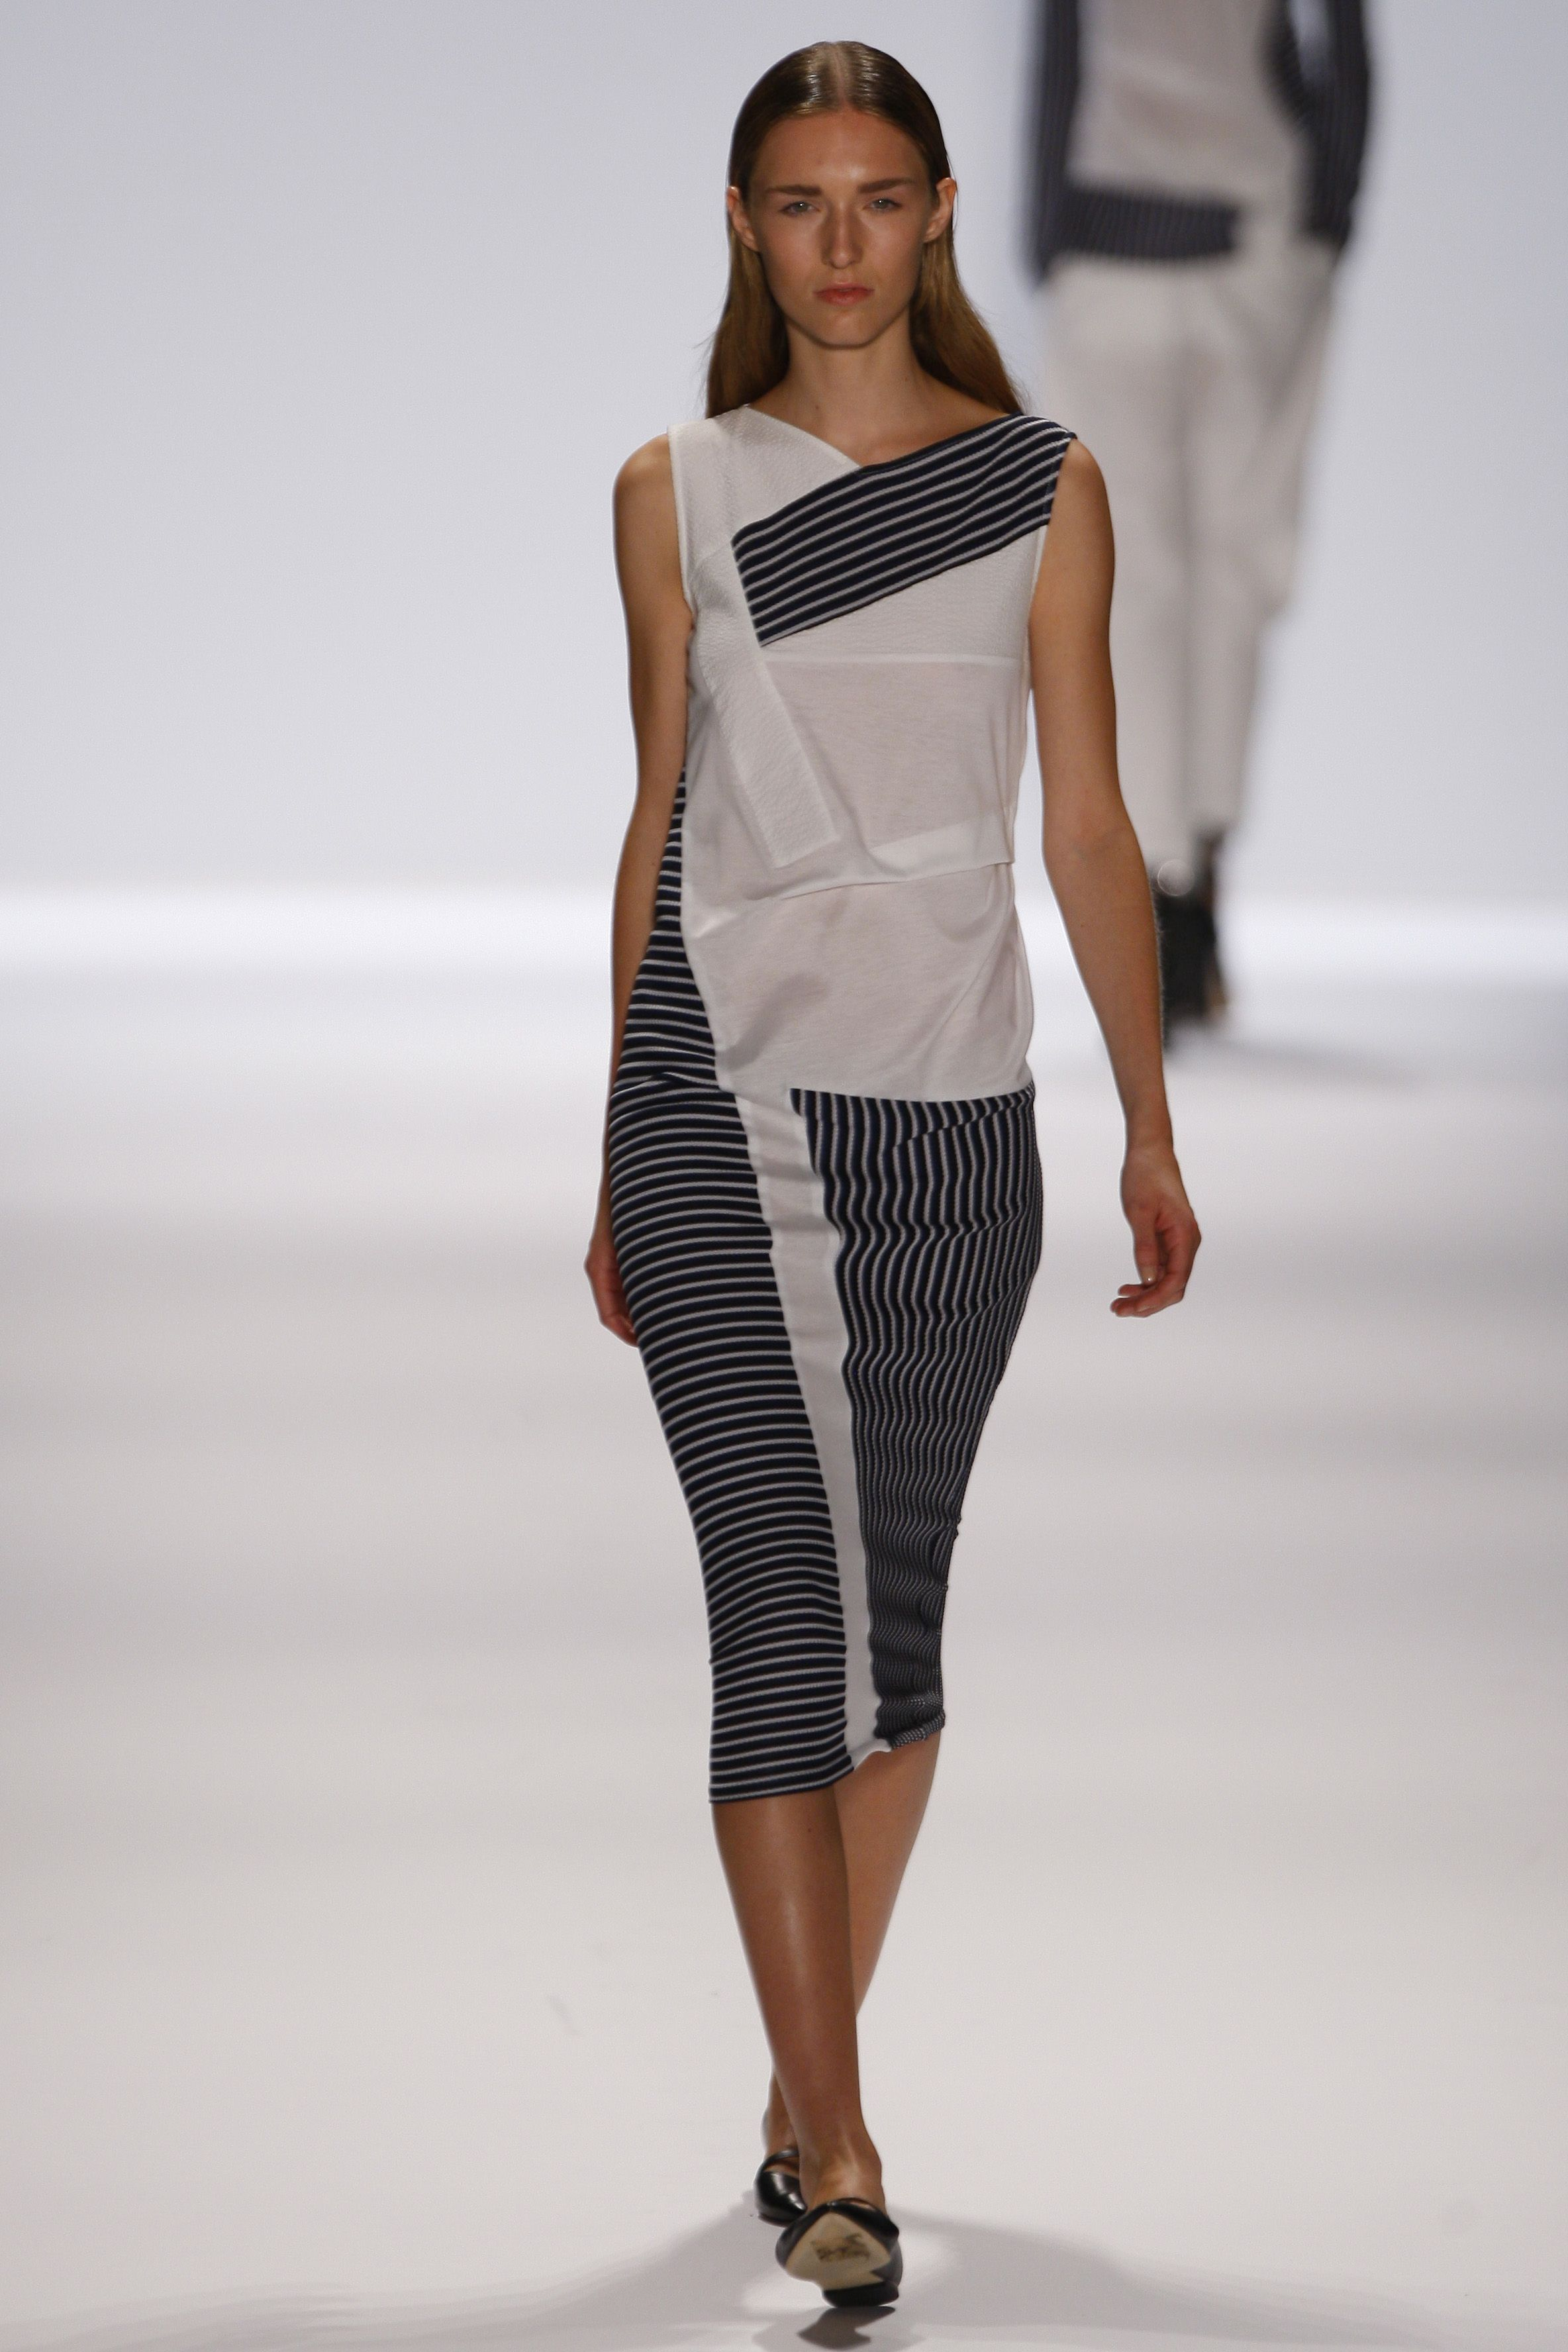 Discussion on this topic: Trend Report: Sheer Layers, trend-report-sheer-layers/